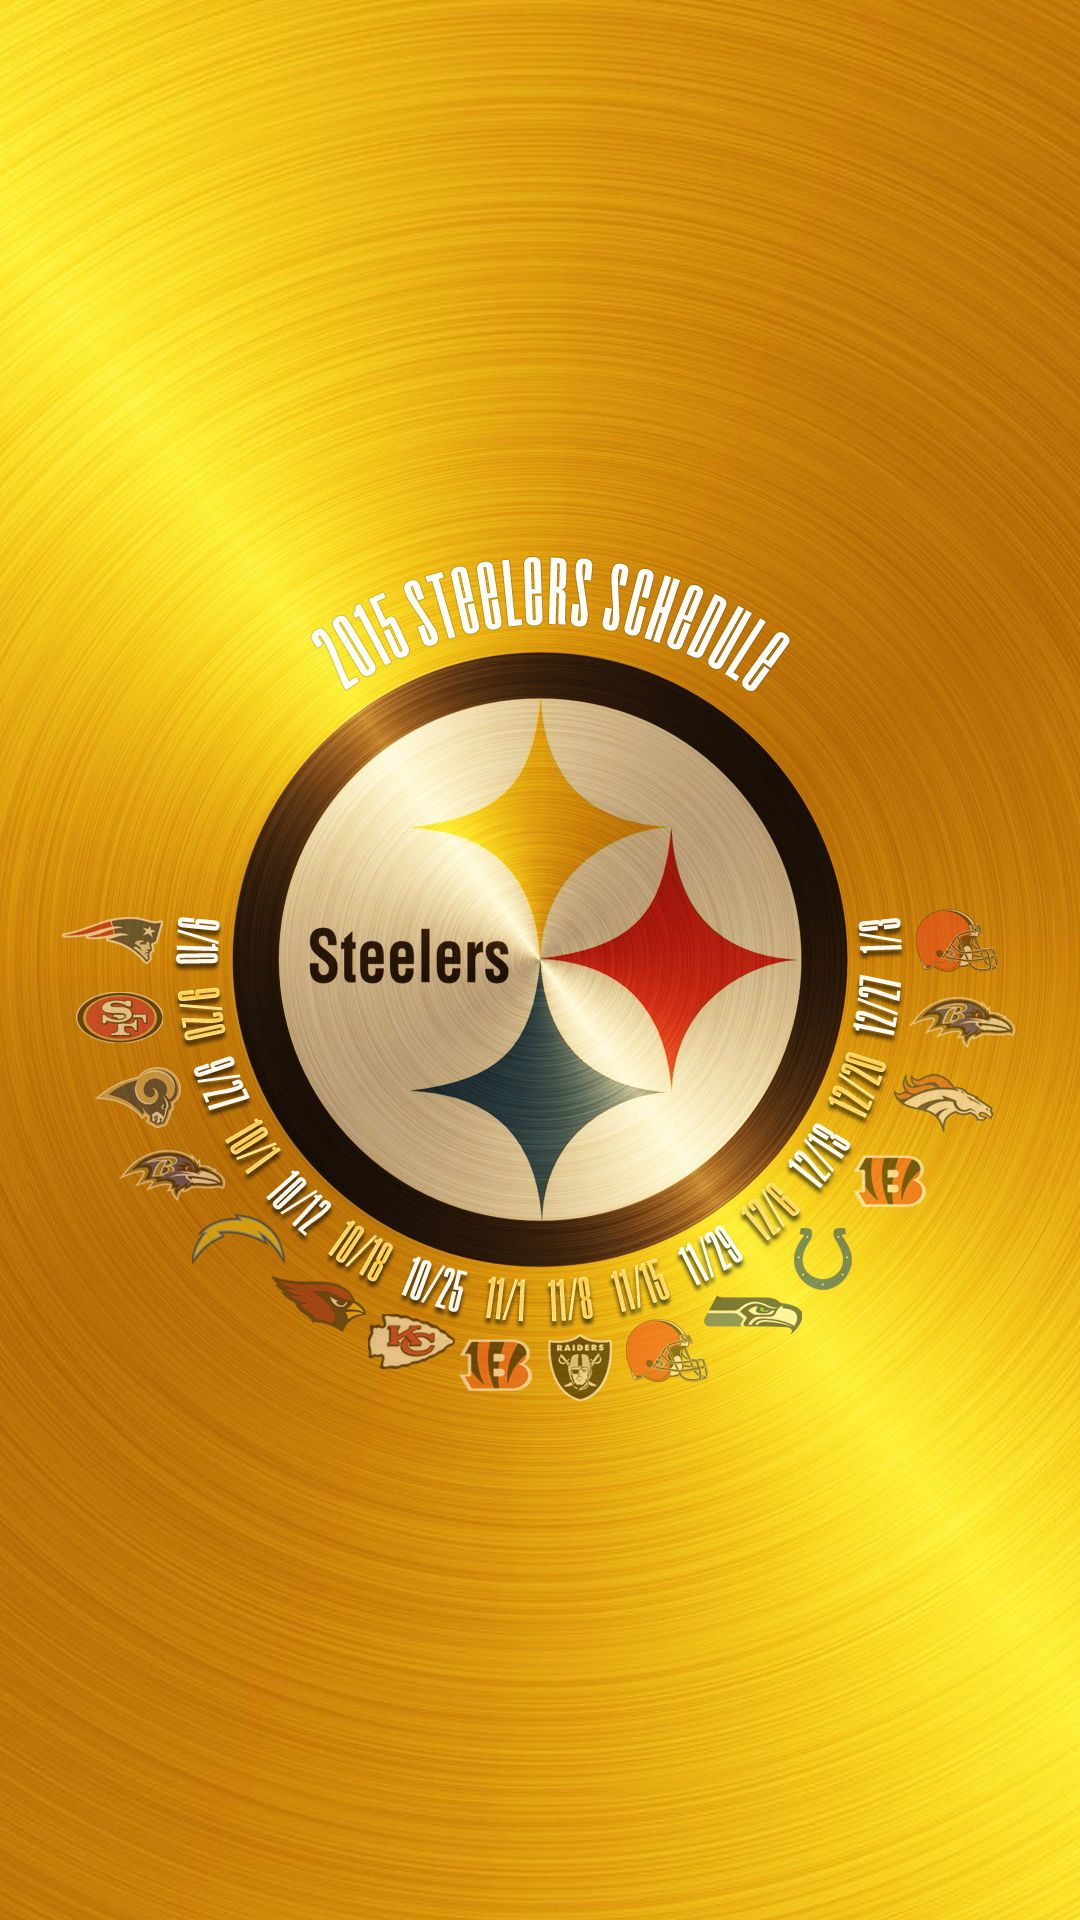 STEELERS 2015 SCHEDULE WALLPAPER Pittsburgh steelers